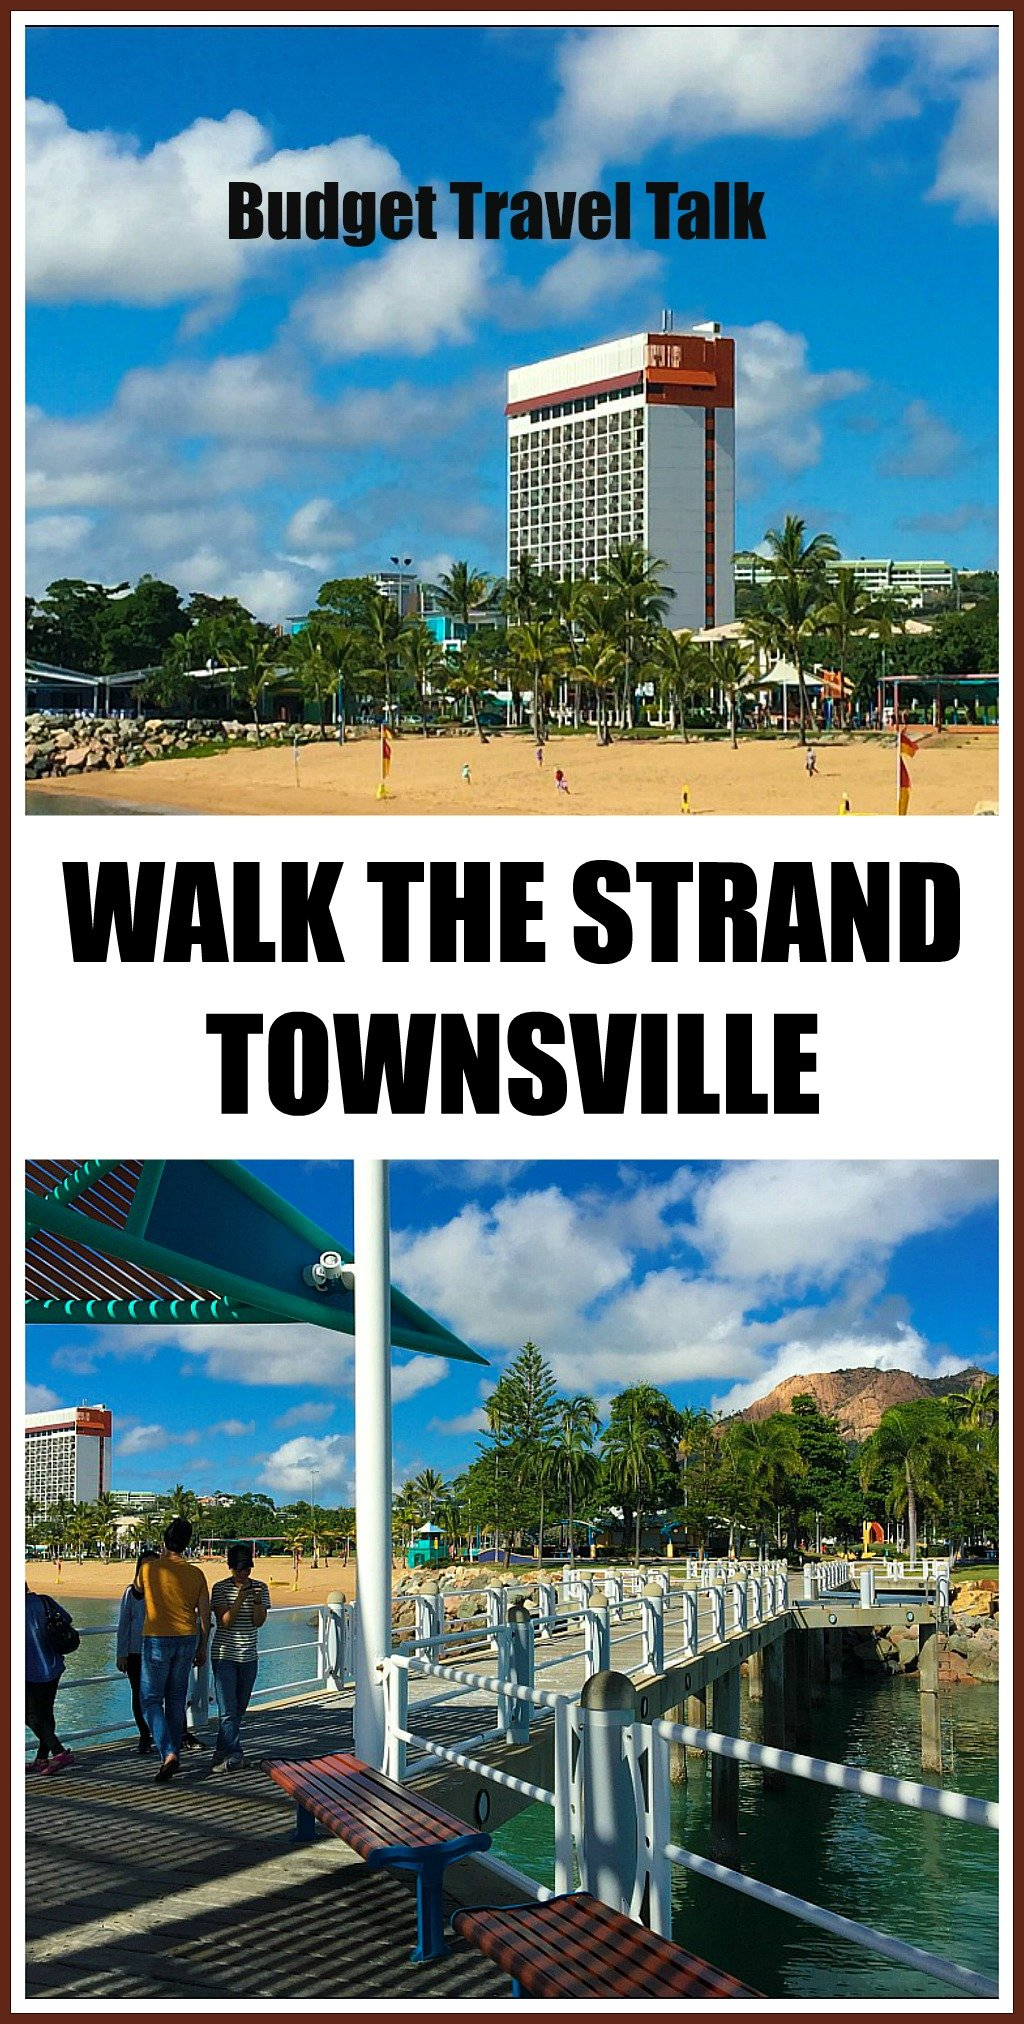 Budget Travel Tip - Walk the Strand Townsville